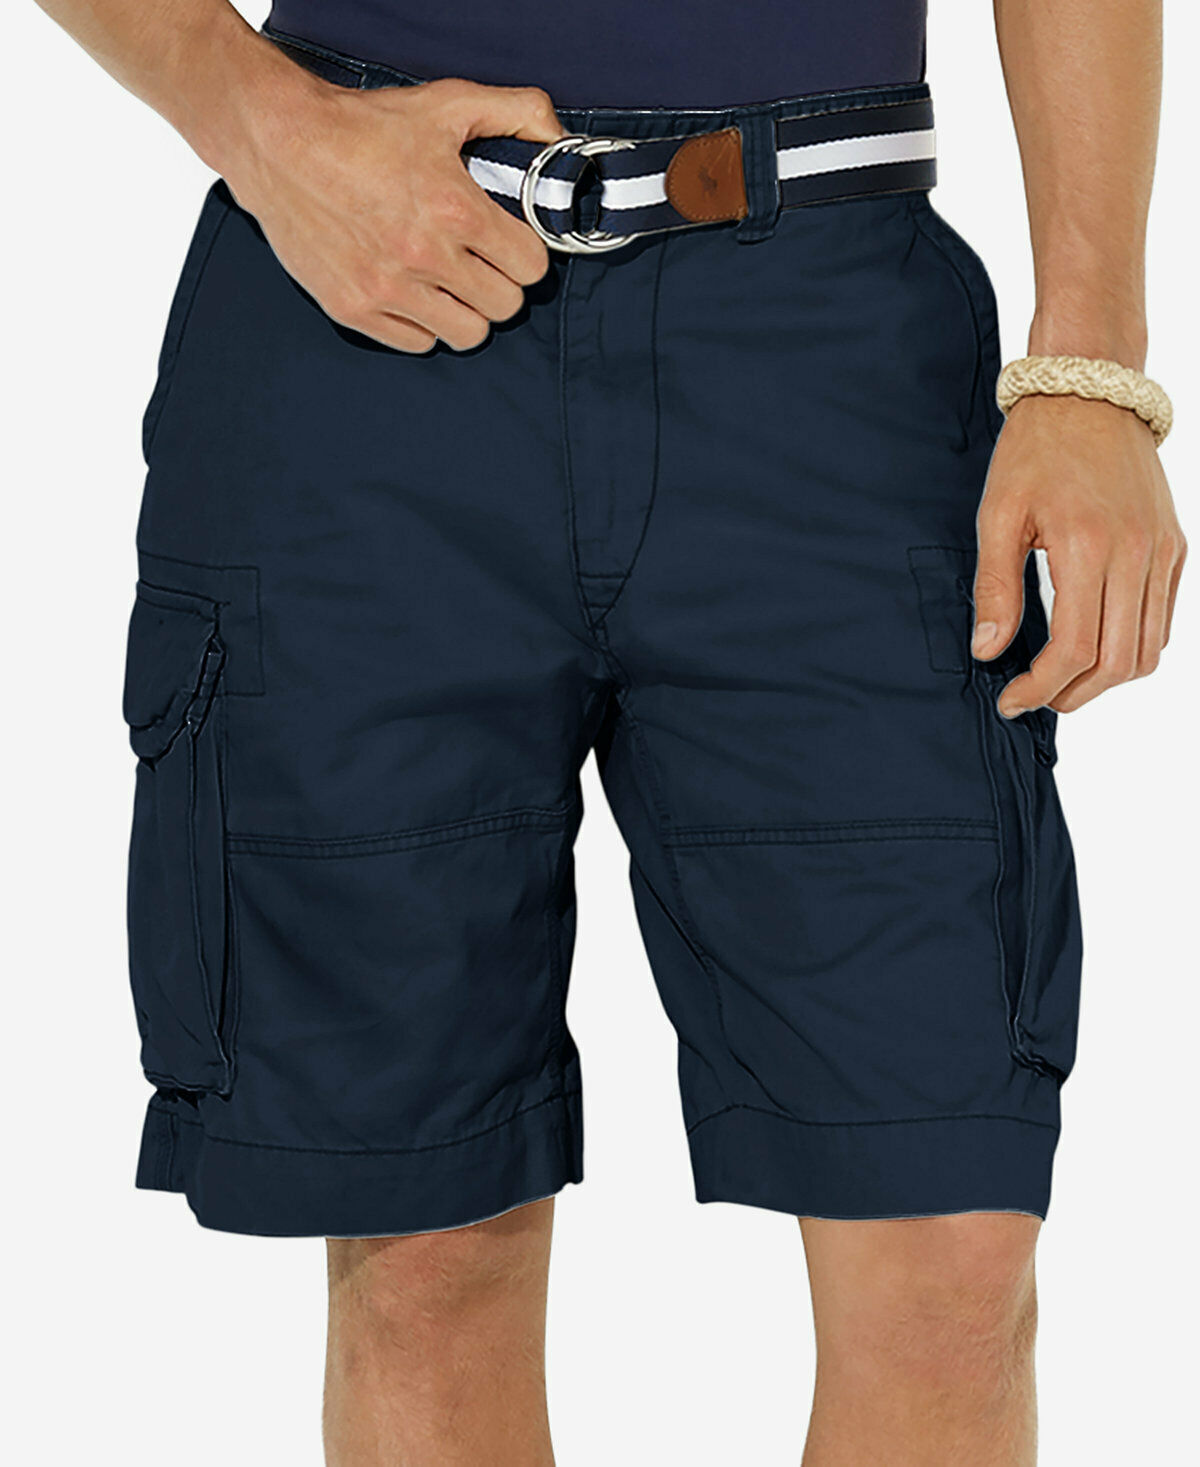 New Polo Ralph Lauren Classic Gellar Cargo Shorts, Aviator Navy, ALL SIZES